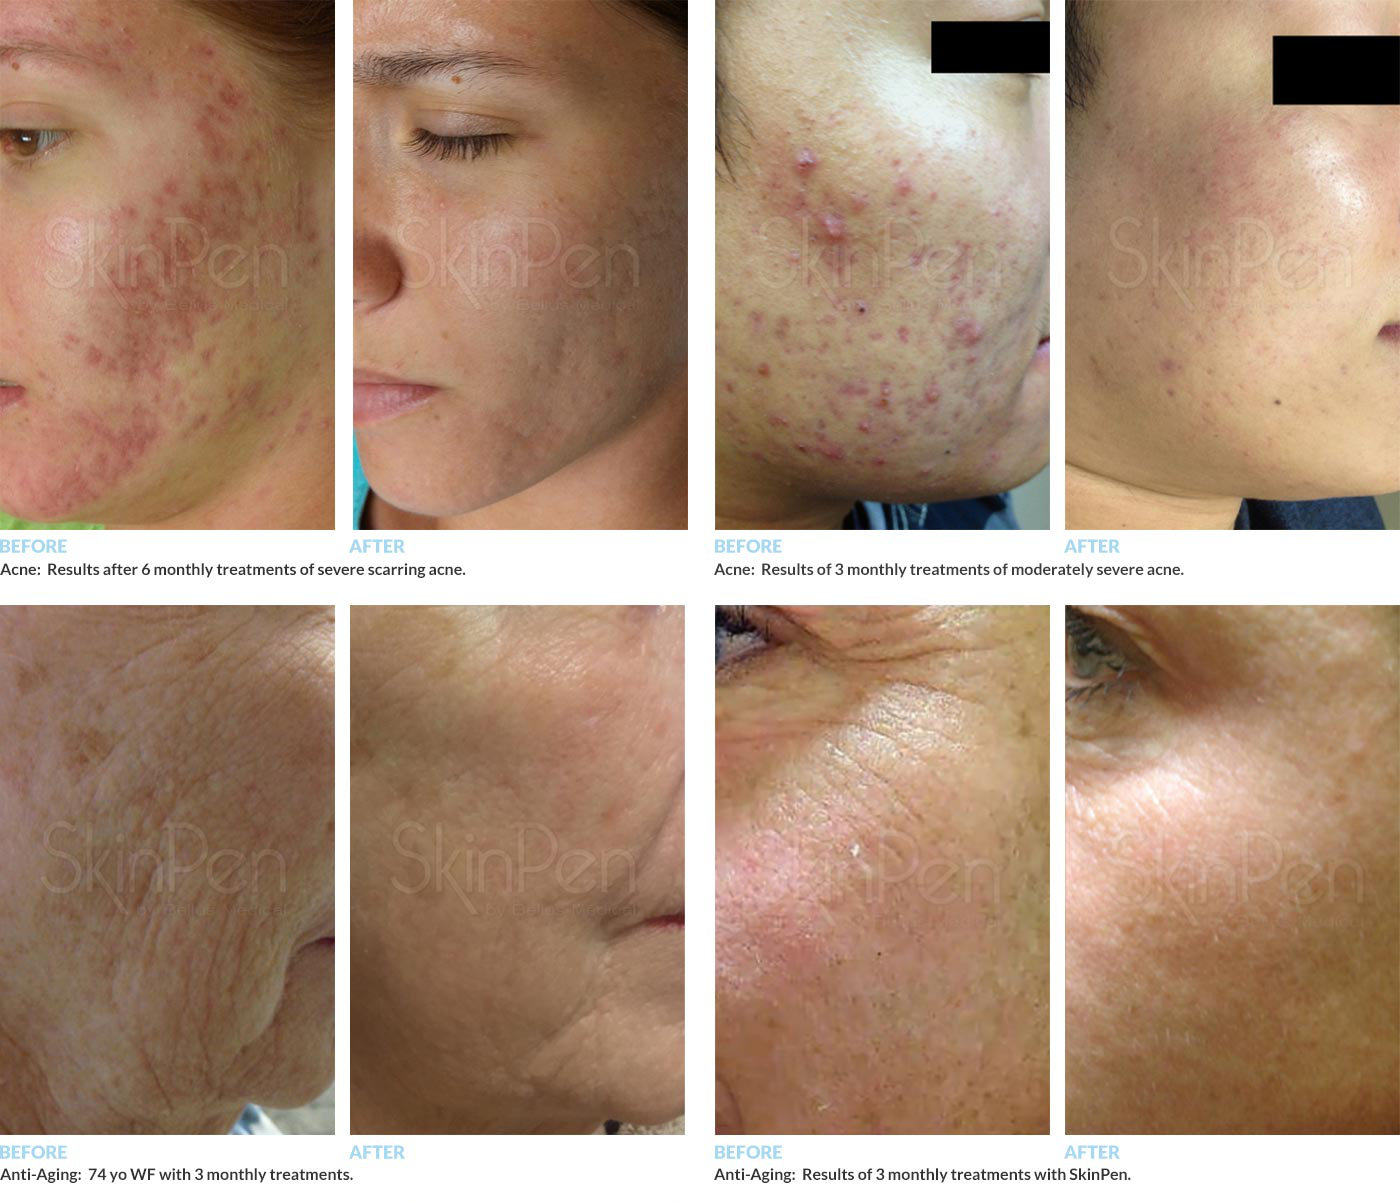 Microneedling Before/After Photos